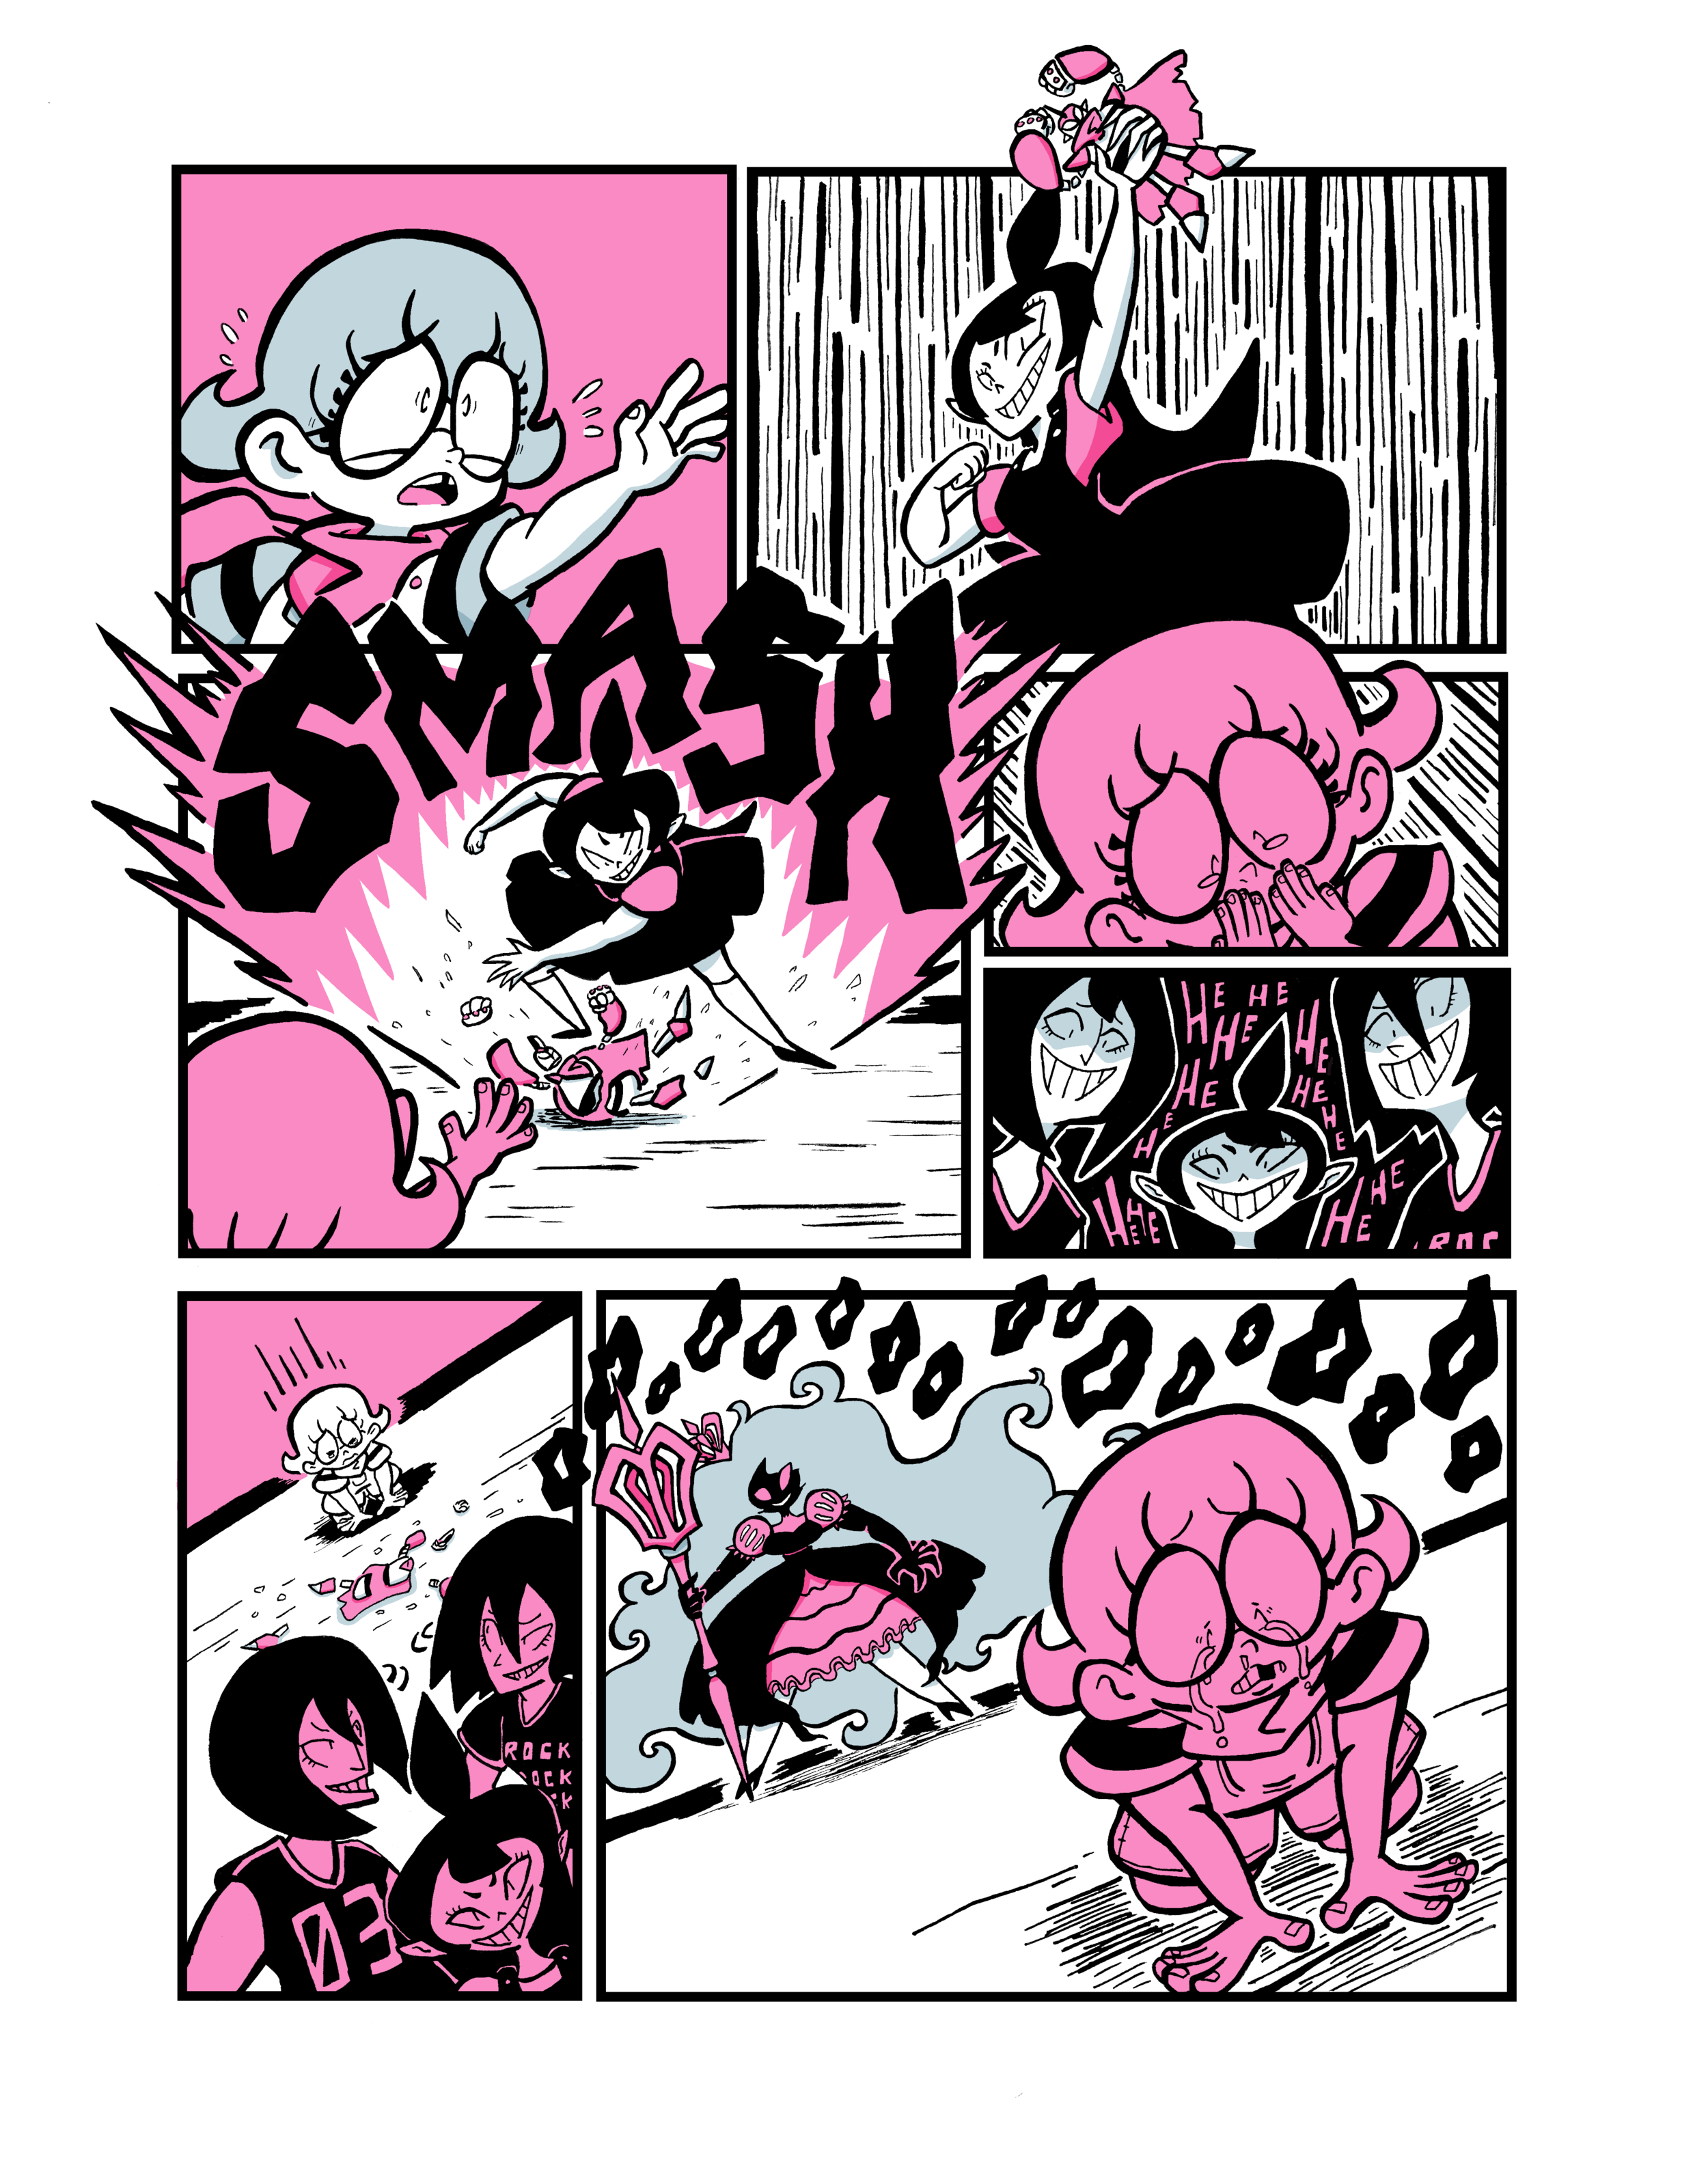 amgdoissue2page9.png